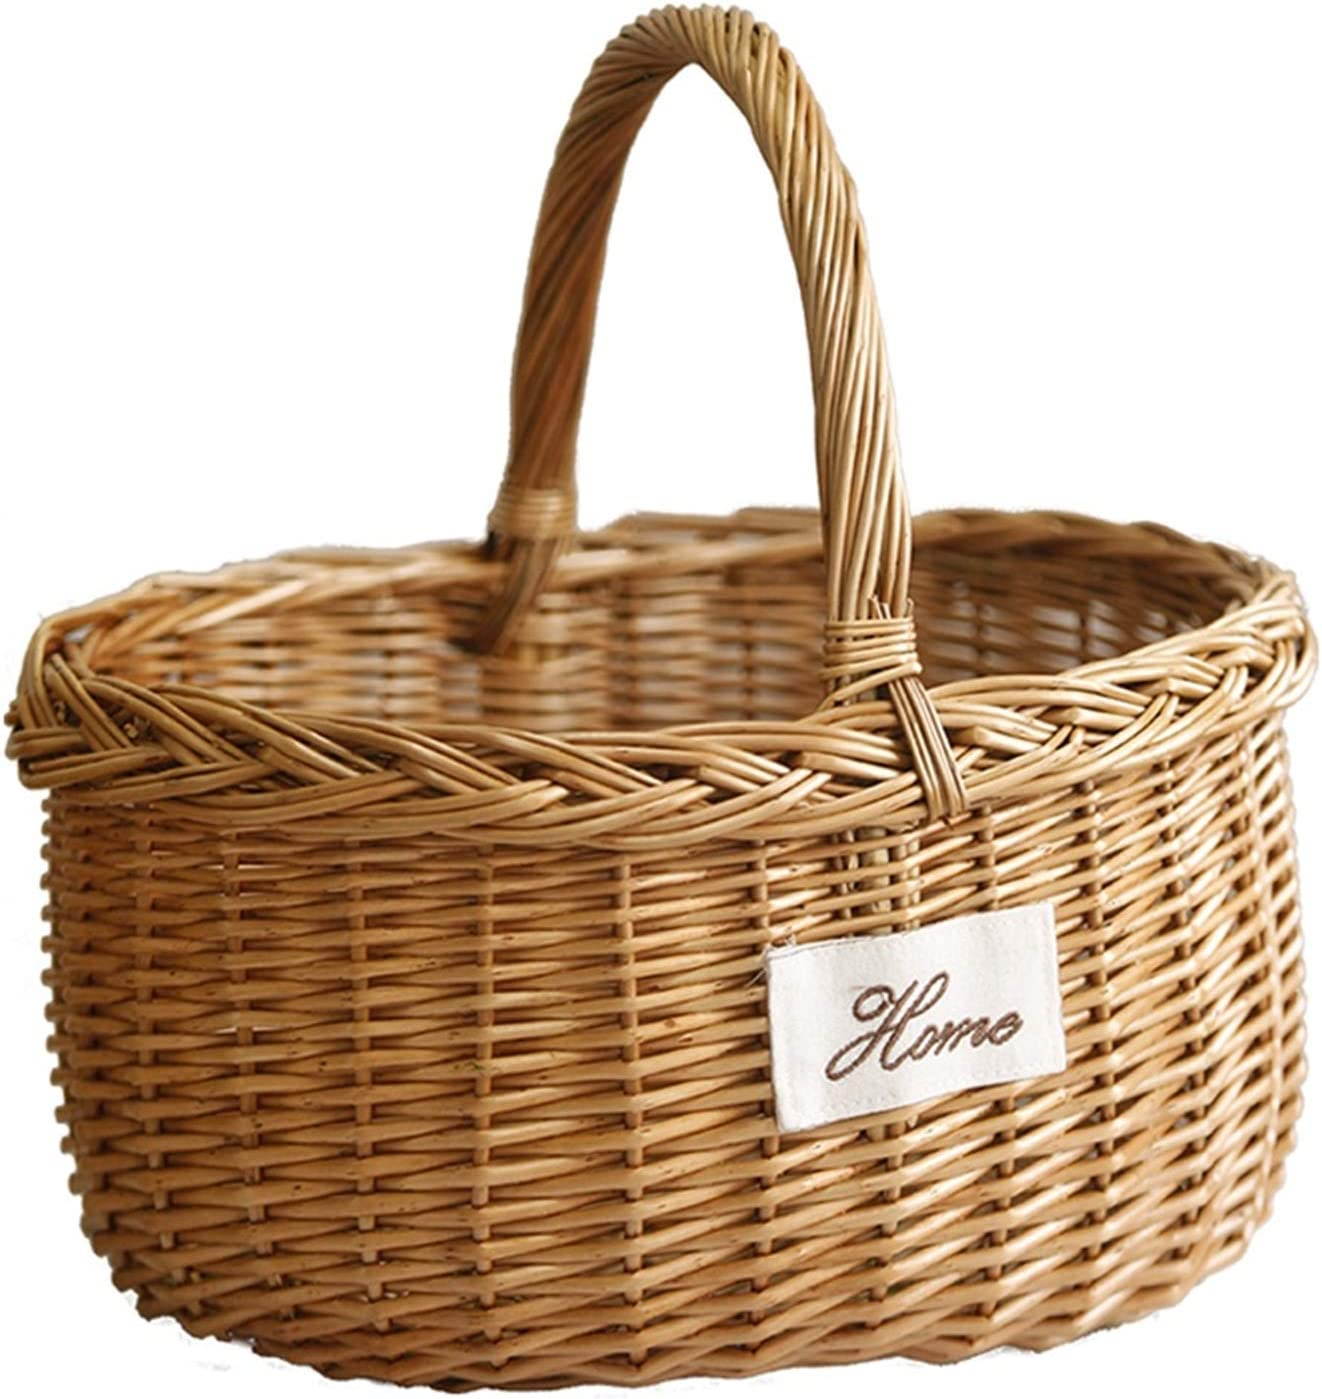 Electric oven Fruit Basket Hand-Woven Max 76% OFF Super beauty product restock quality top Storage Ba Shopping